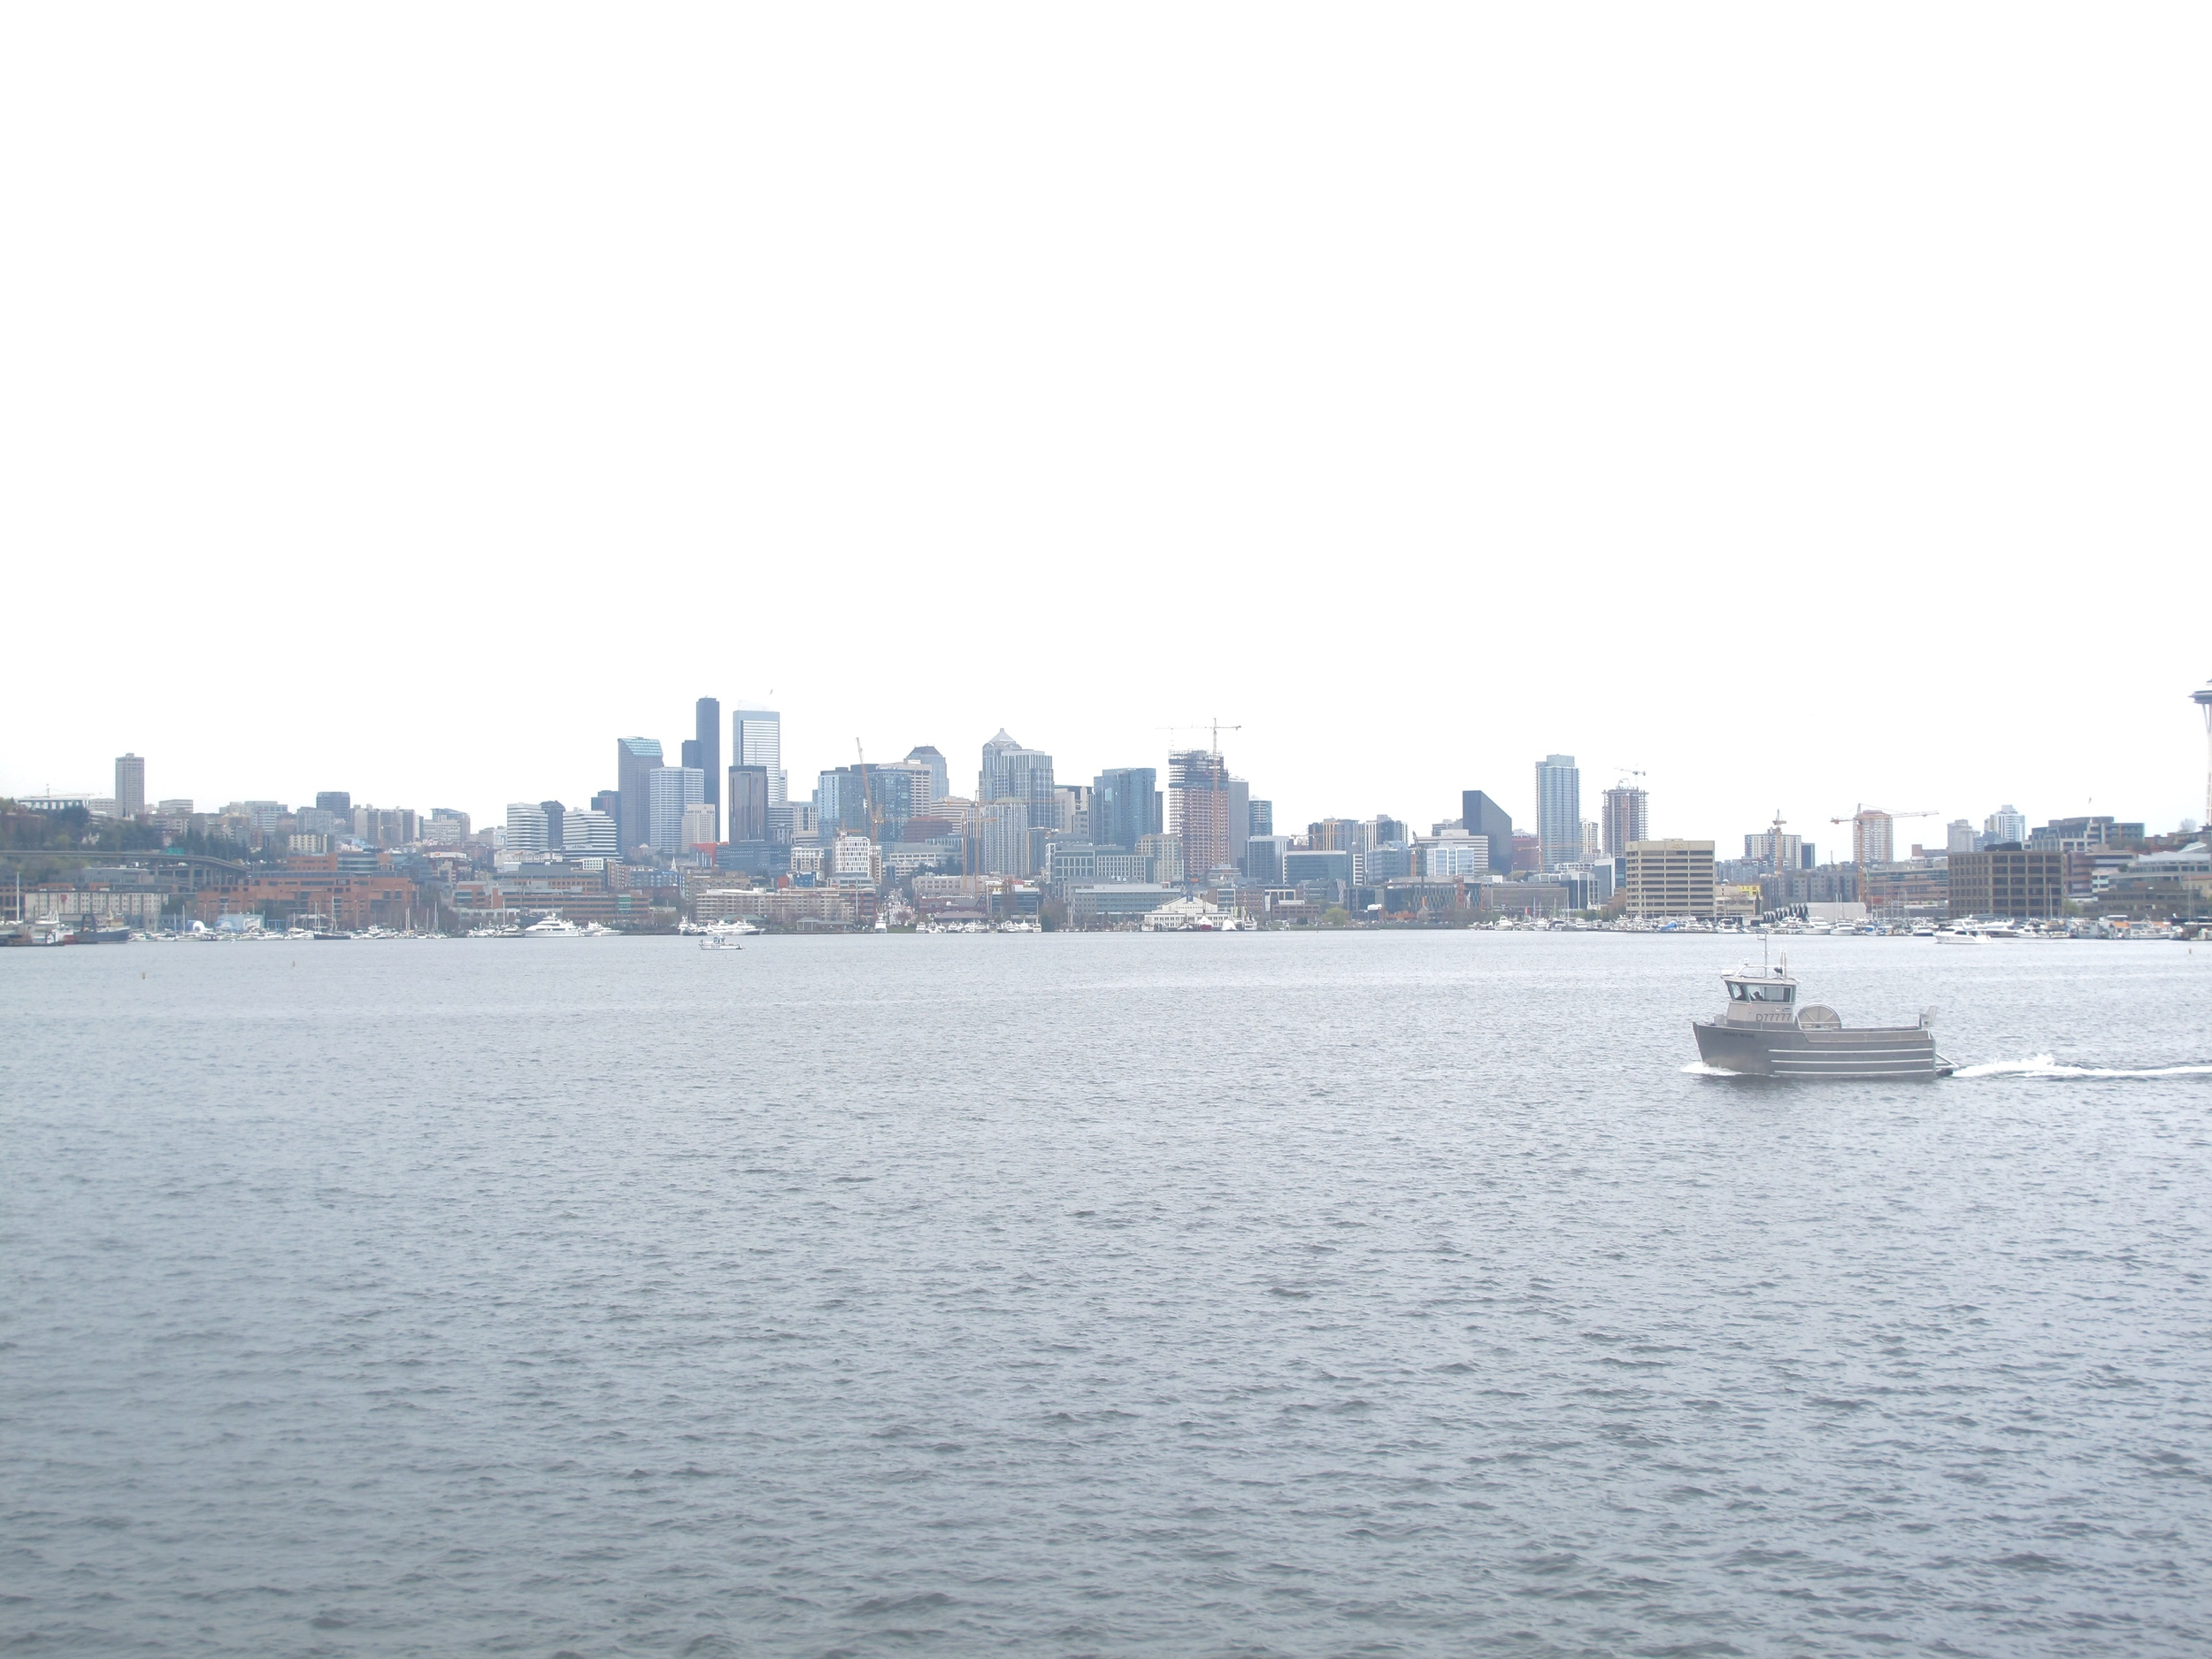 Seattle city skyline seen from Gasworks Park, with a boat driving through.